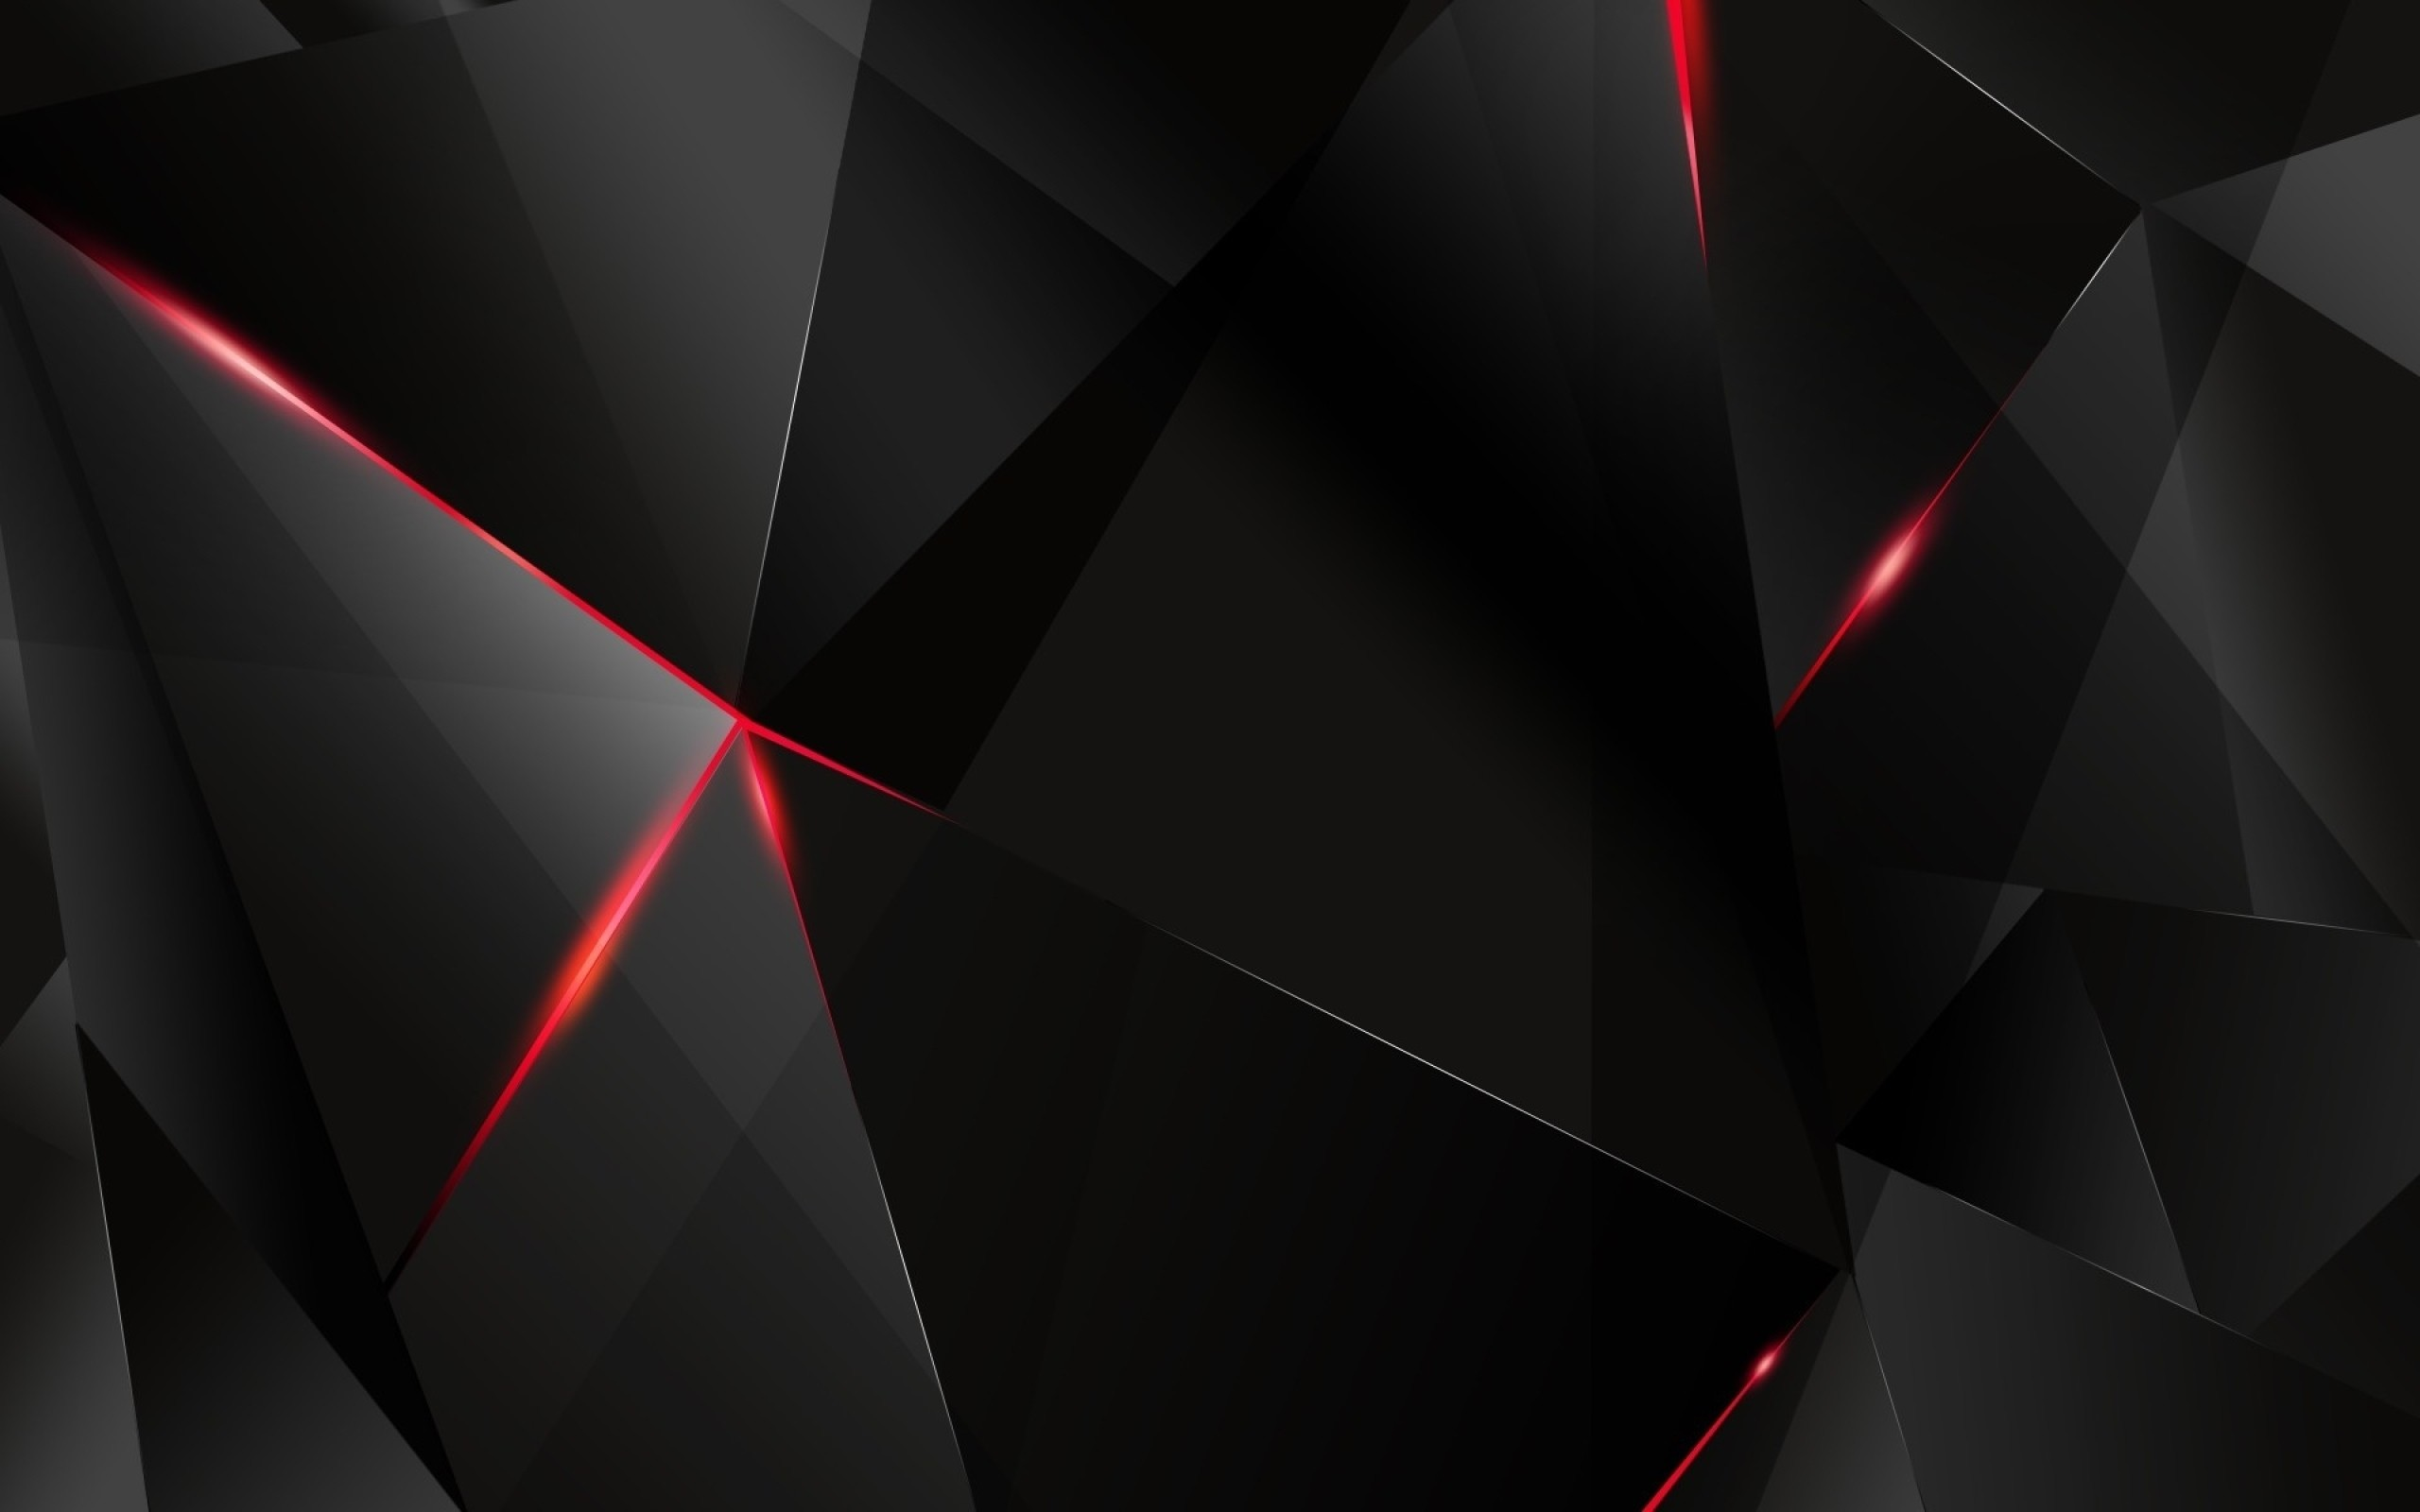 Black And Red Wallpaper Download Free Stunning Backgrounds For